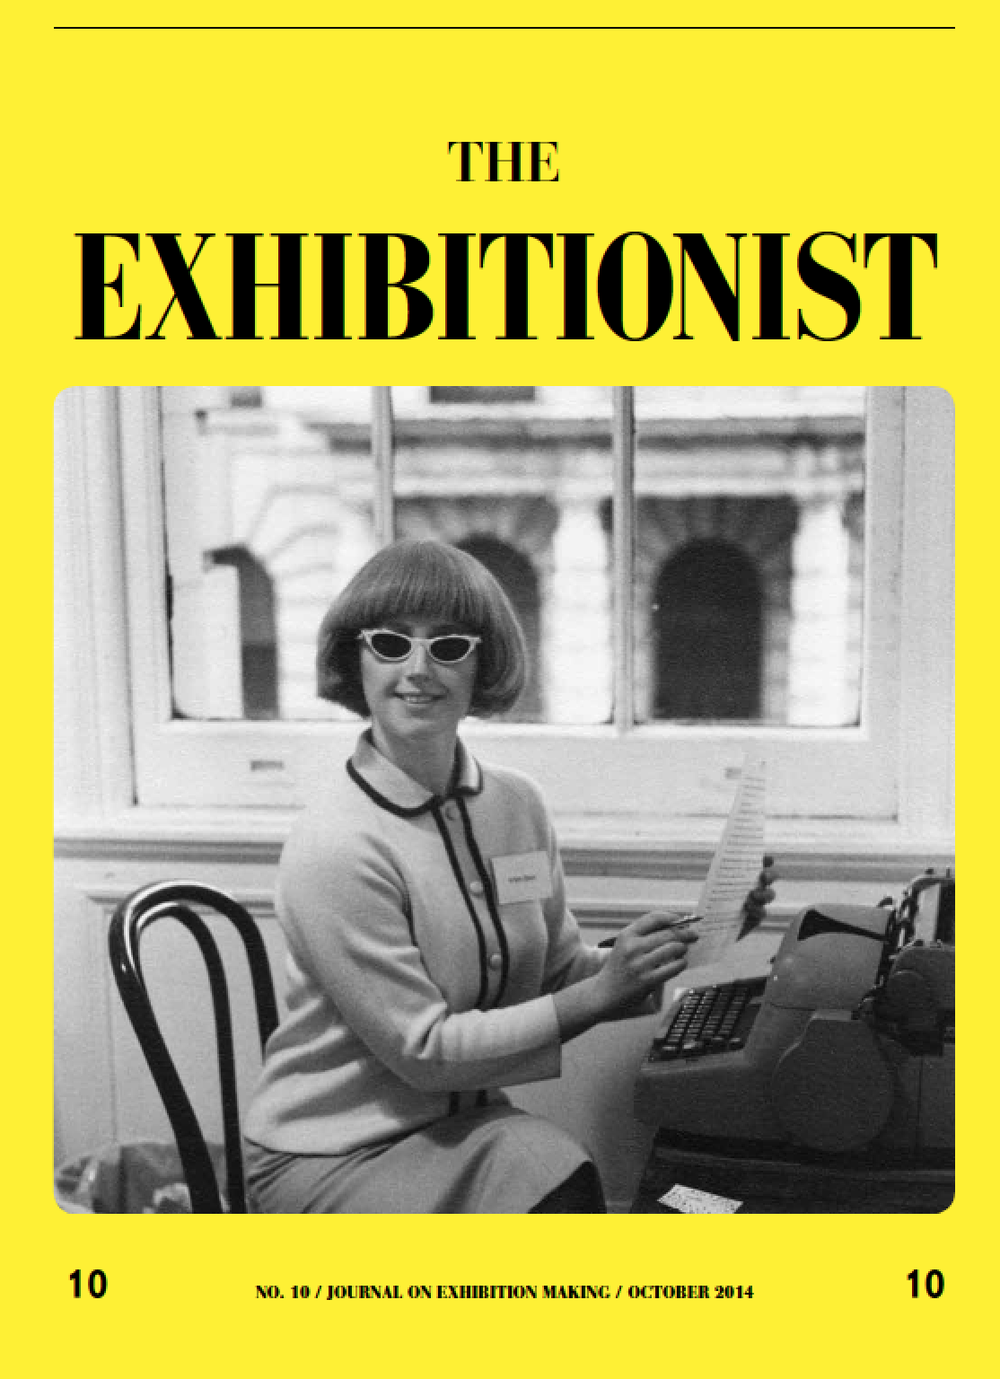 The Exhibitionist  10, October 2014